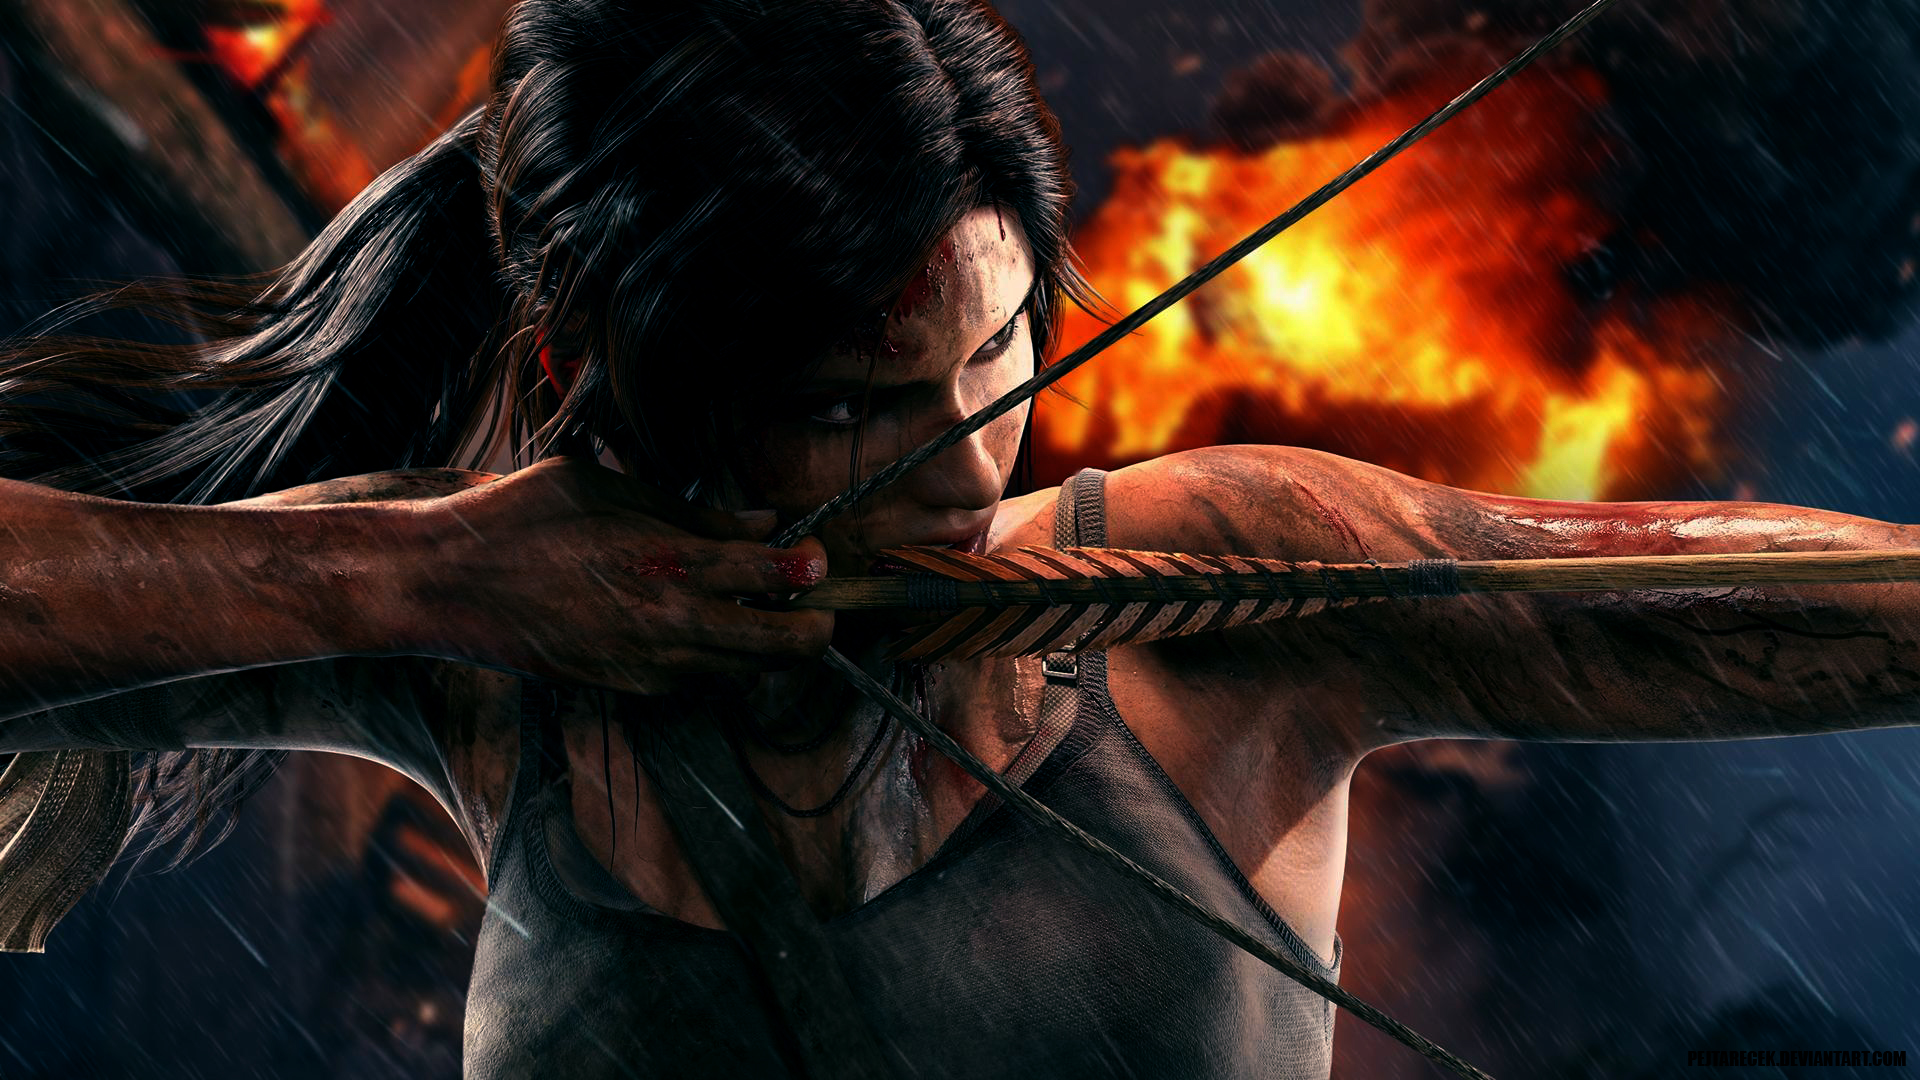 Tomb Raider 2013 Wallpaper: Lara Croft Tomb Raider 2013 Wallpaper By Pejtarecek On